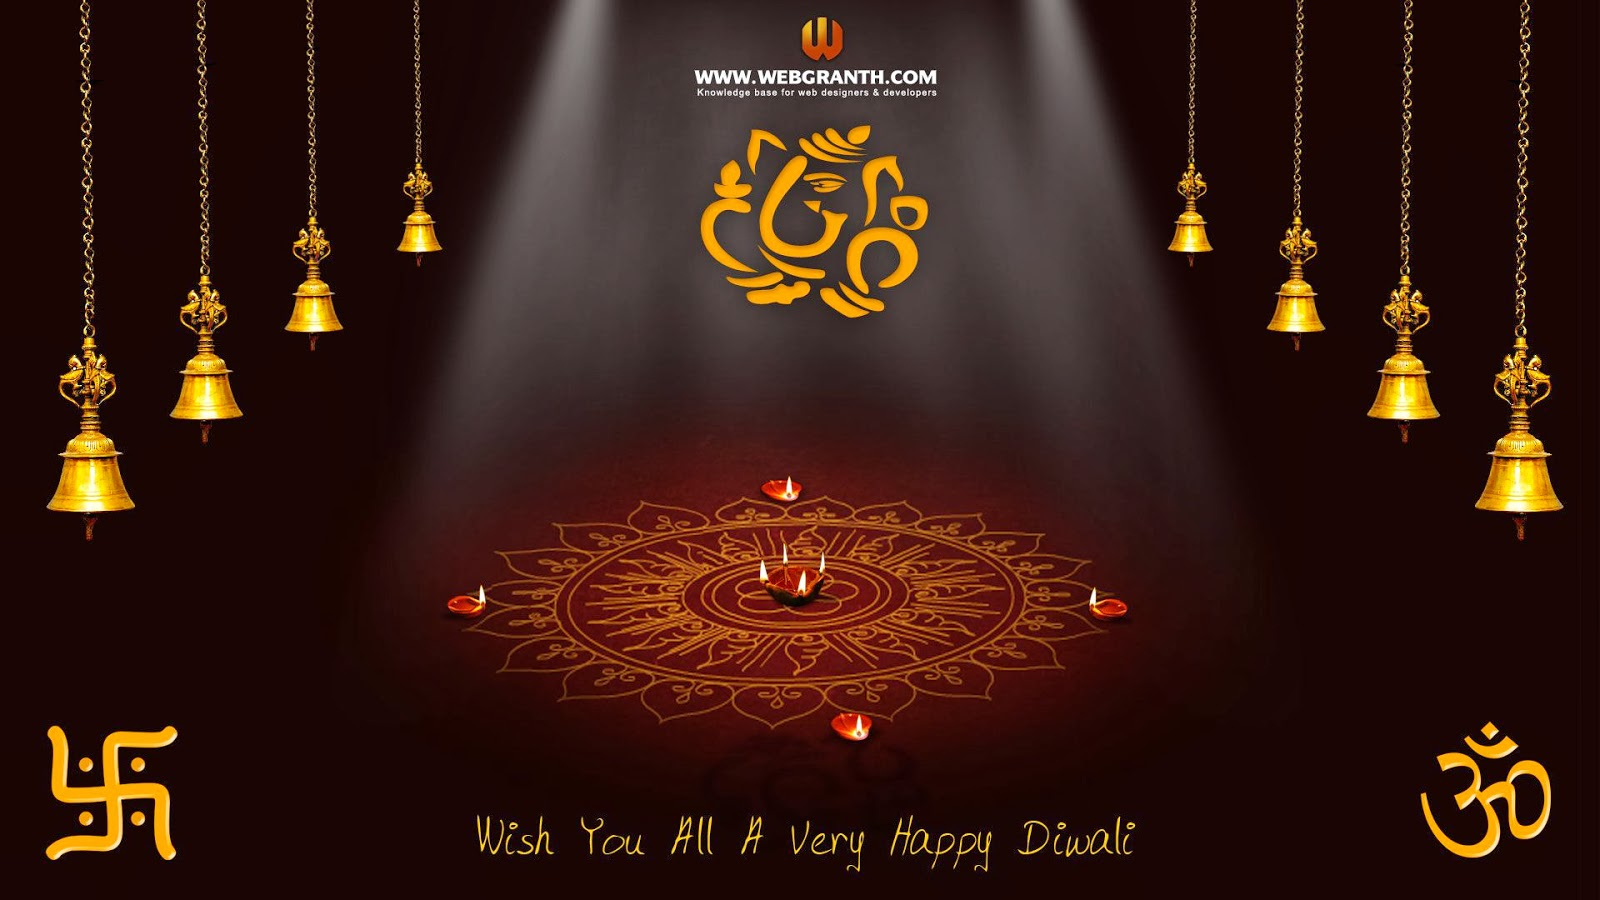 Beautiful Diwali Greeting Card Designs And Backgrounds For Your